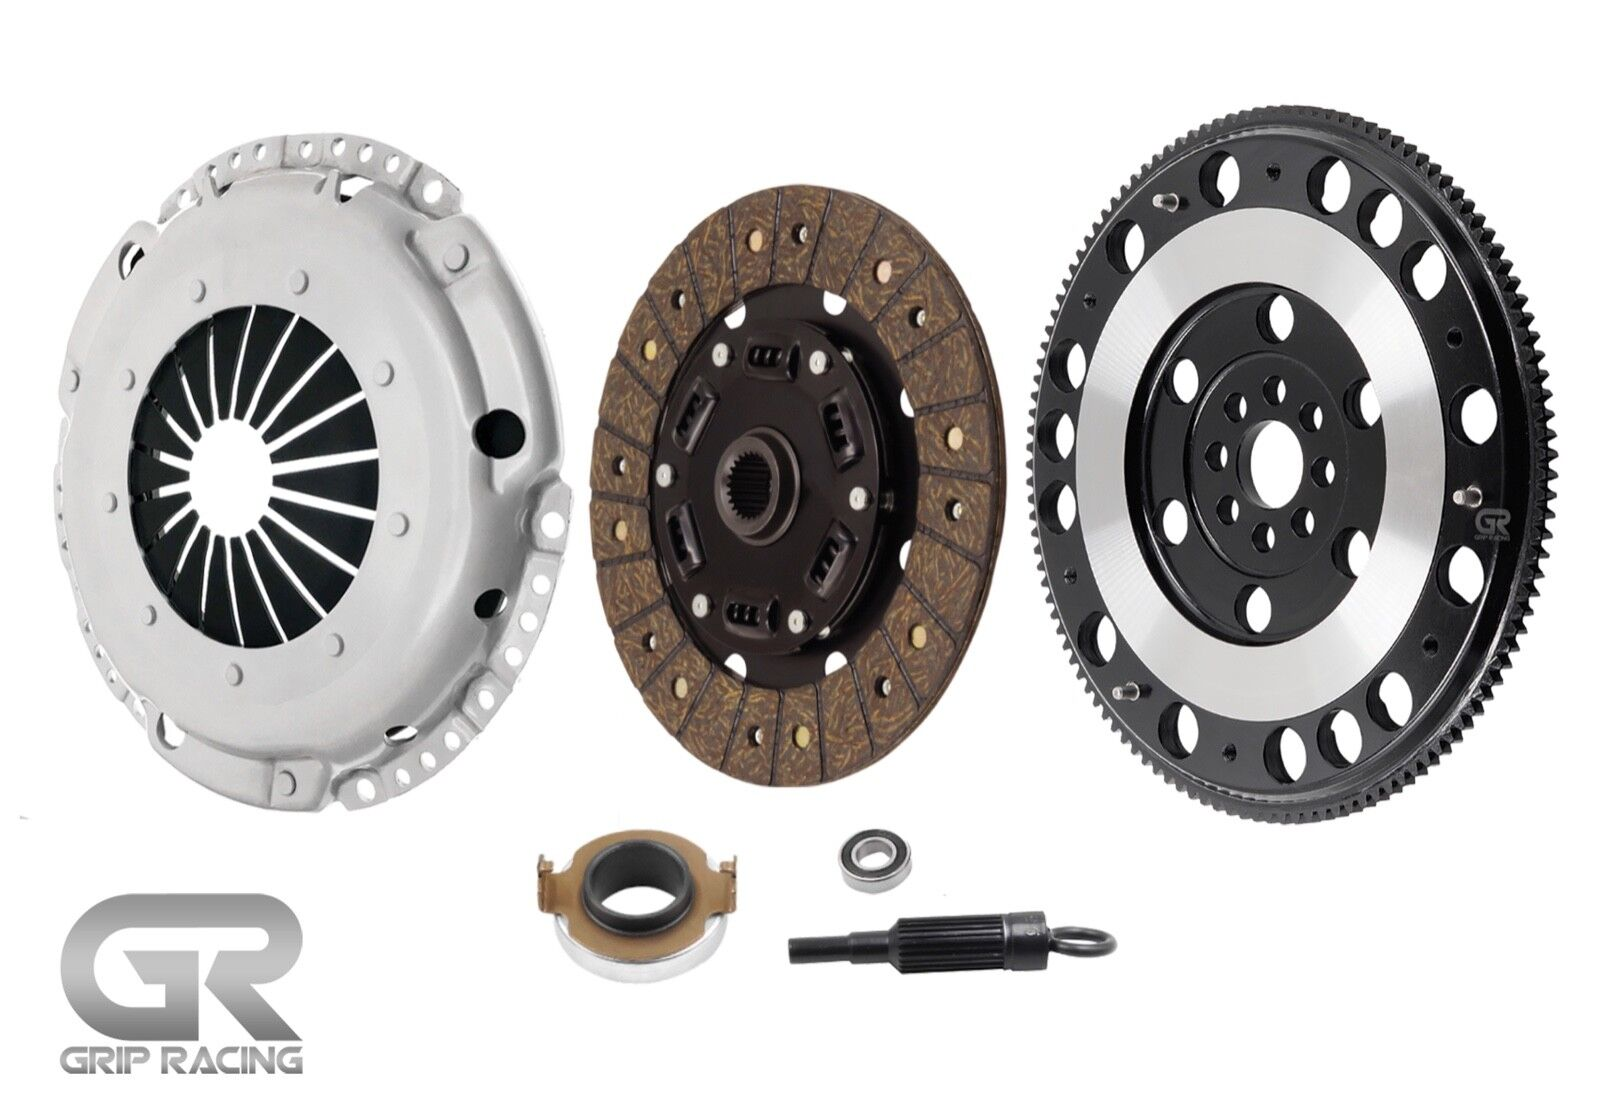 Details about GRIP RACING Fits ACURA TSX 2 4L K24 K24A2 PREMIUM STAGE 2 &  LIGHTWEIGHT FLYWHEEL